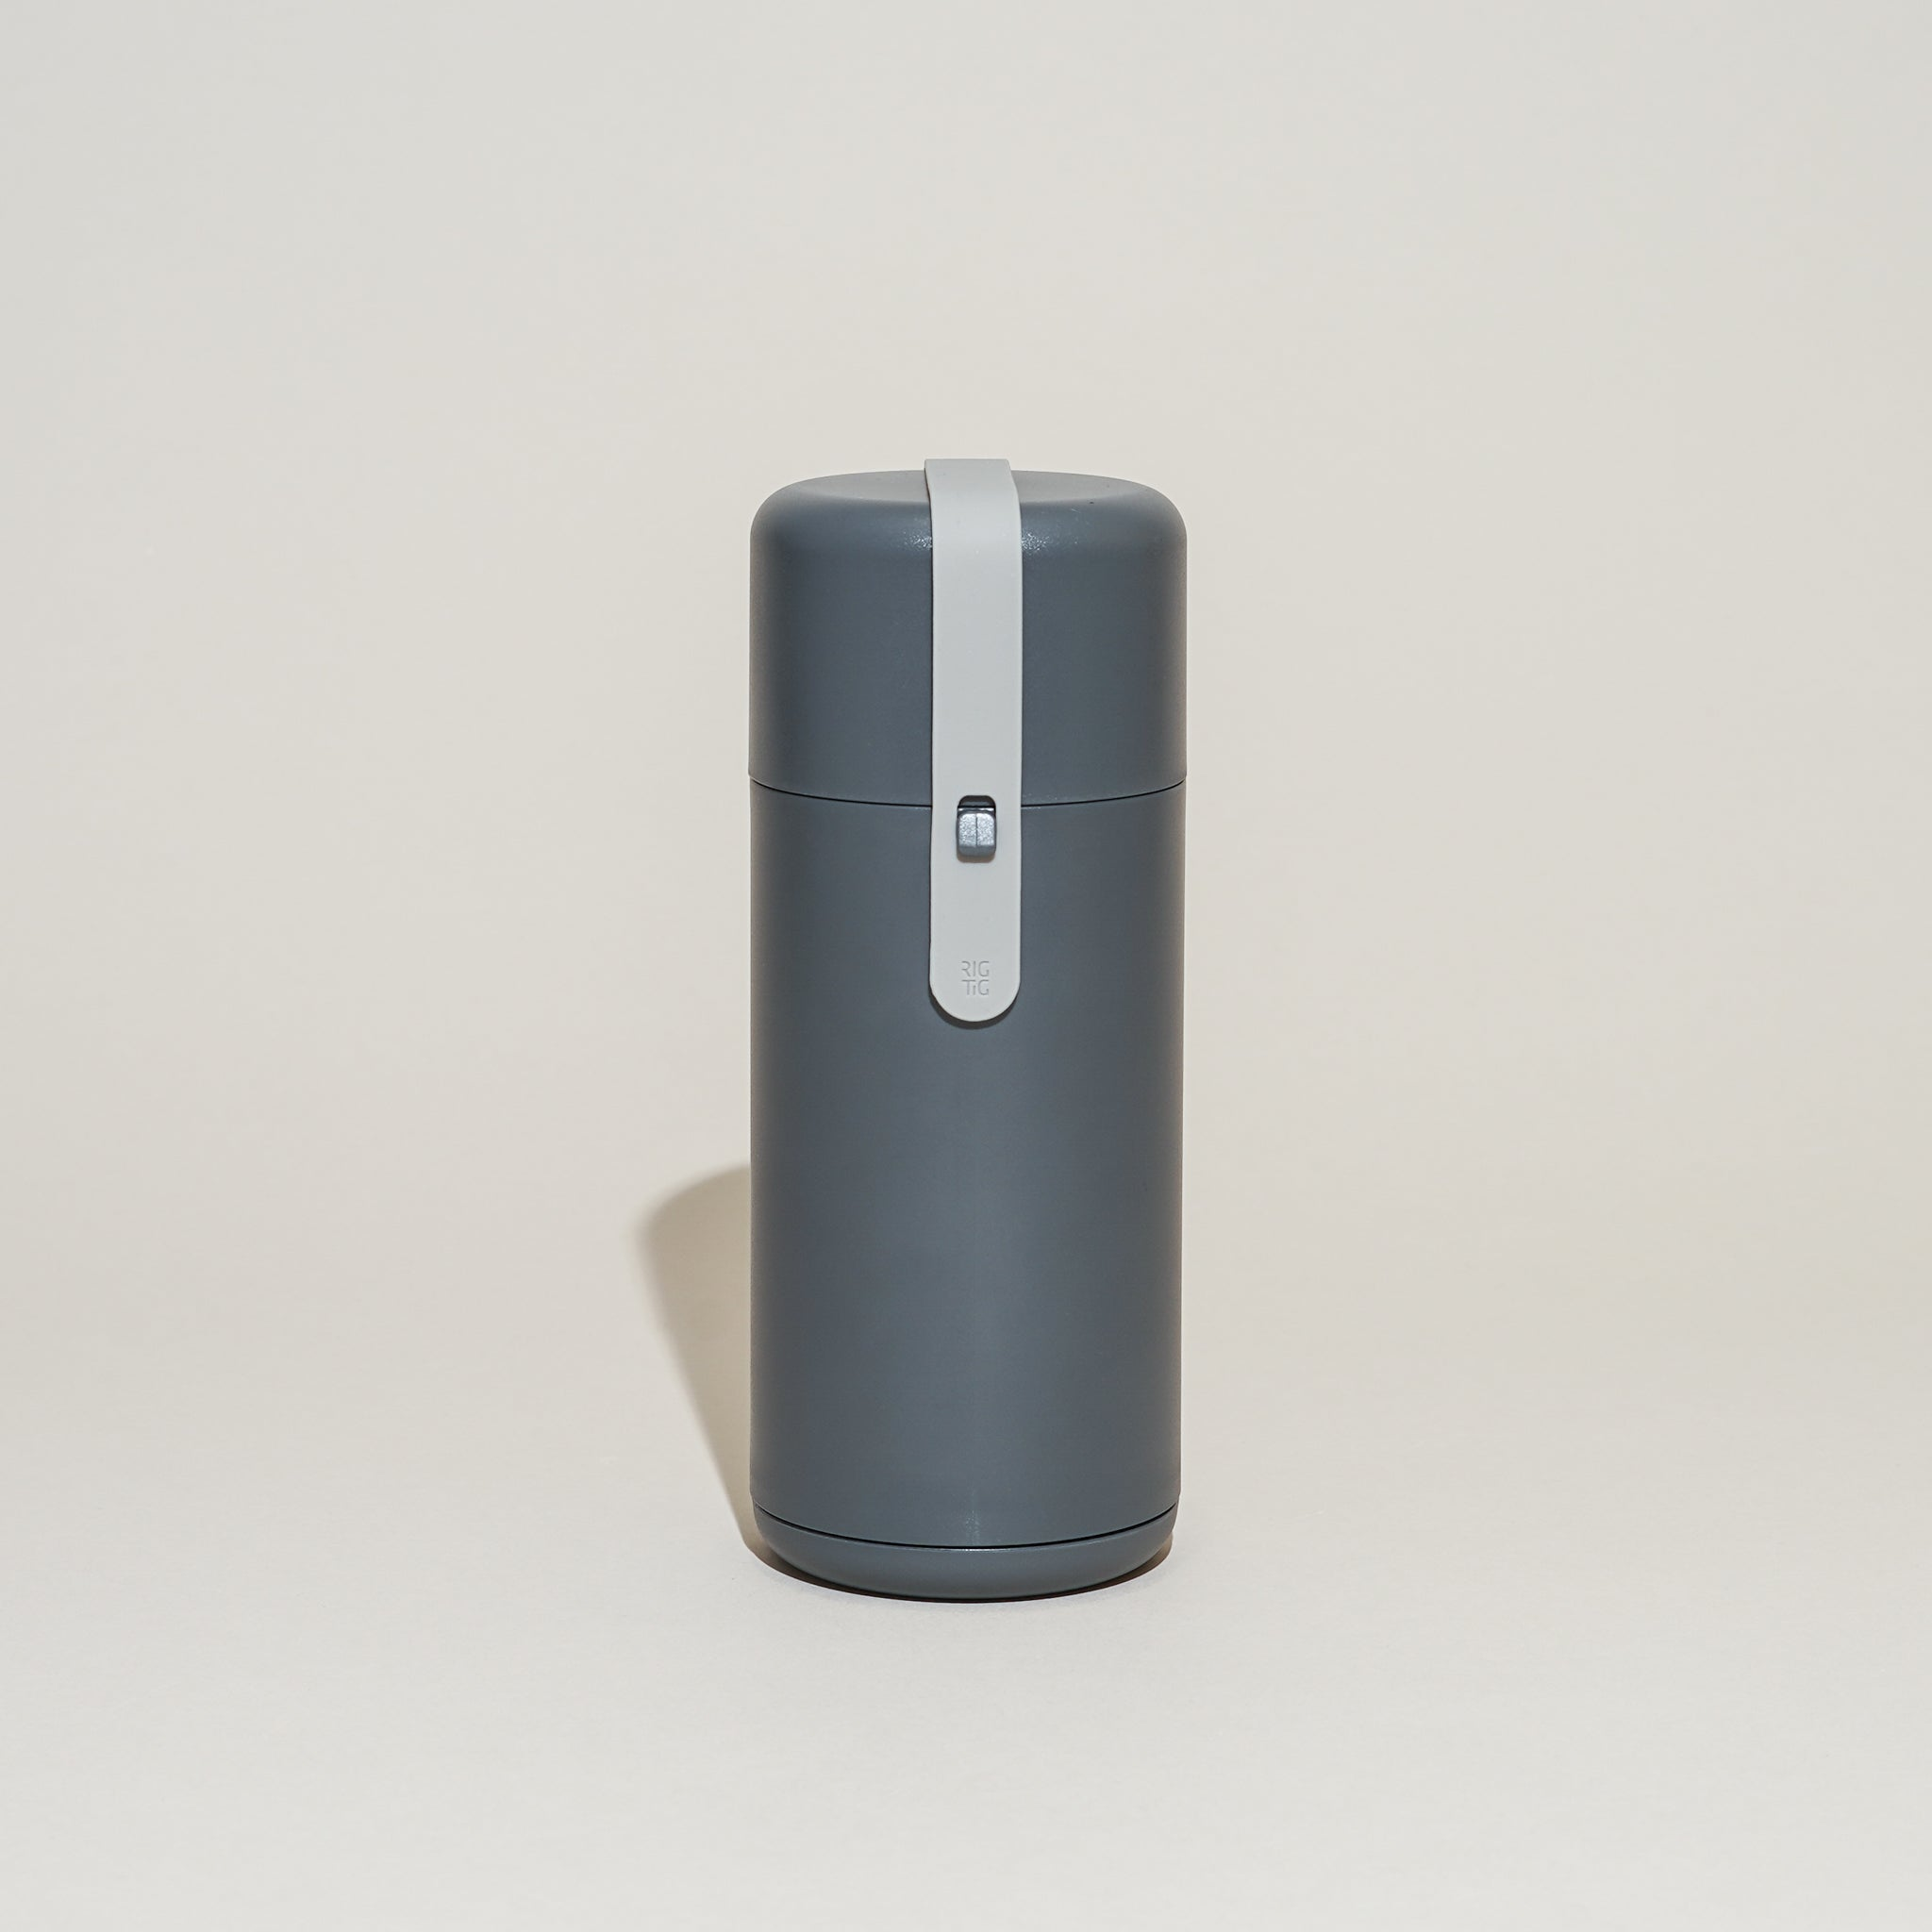 The Keep-It Cool Water Bottle from Rig-Tig by Stelton.